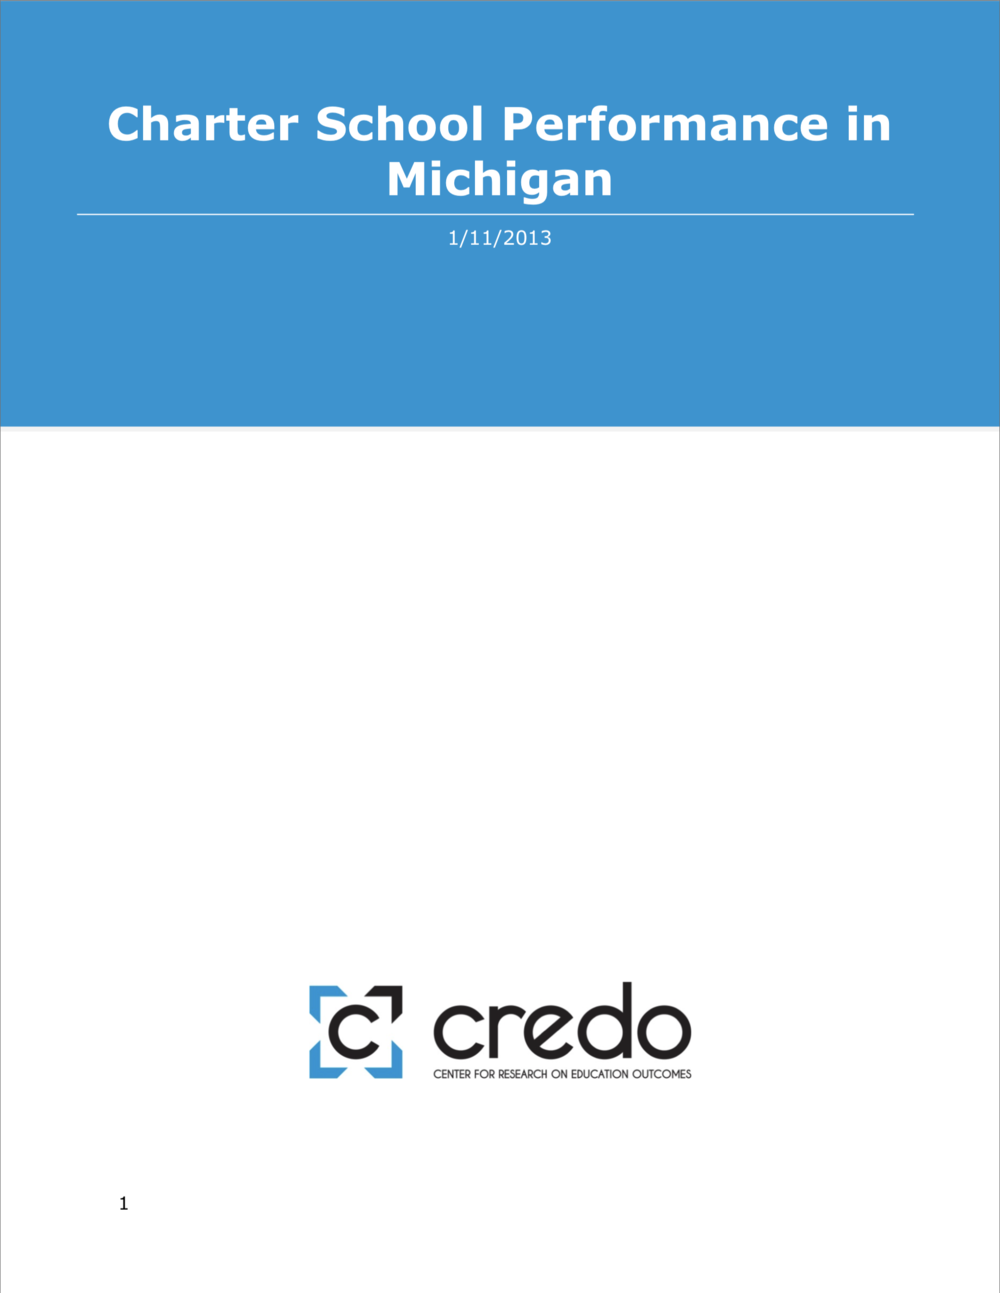 MI Public Charter Achievement - A study from CREDO — a Stanford-based research group well known for its public charter school research — found that public charter schools in Michigan, and especially Detroit, moderately outperform district schools. The state's for-profit public charter schools, if anything, perform better than non-profit public charter schools, according to CREDO, and, unlike in most other states, online public charter schools in Michigan do just as well as other schools.